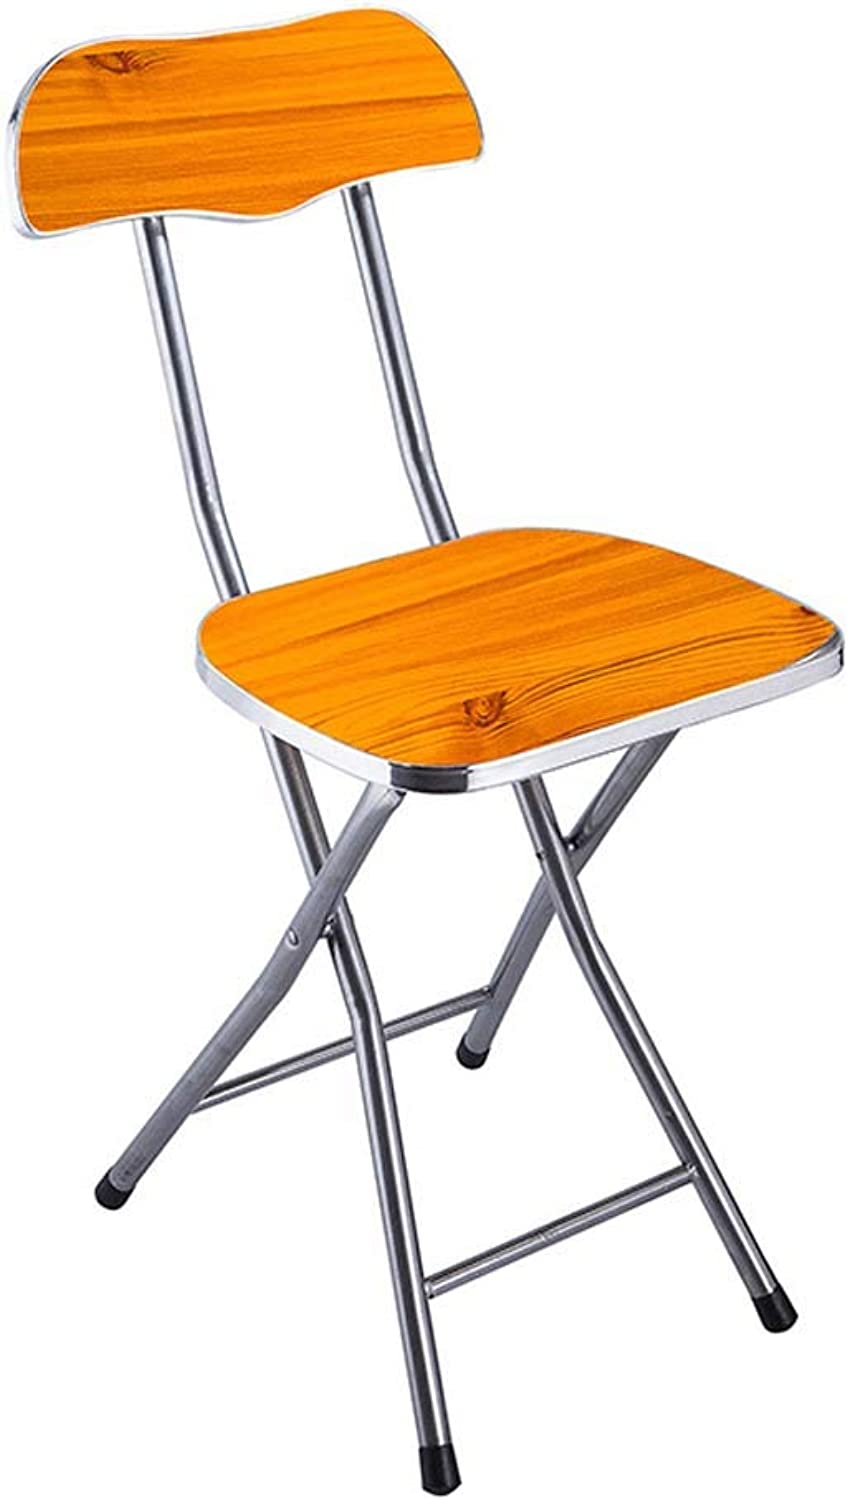 Folding Chair Restaurant Folding Chair Office Meeting Training Wooden Chair Multifunctional Folding Stool